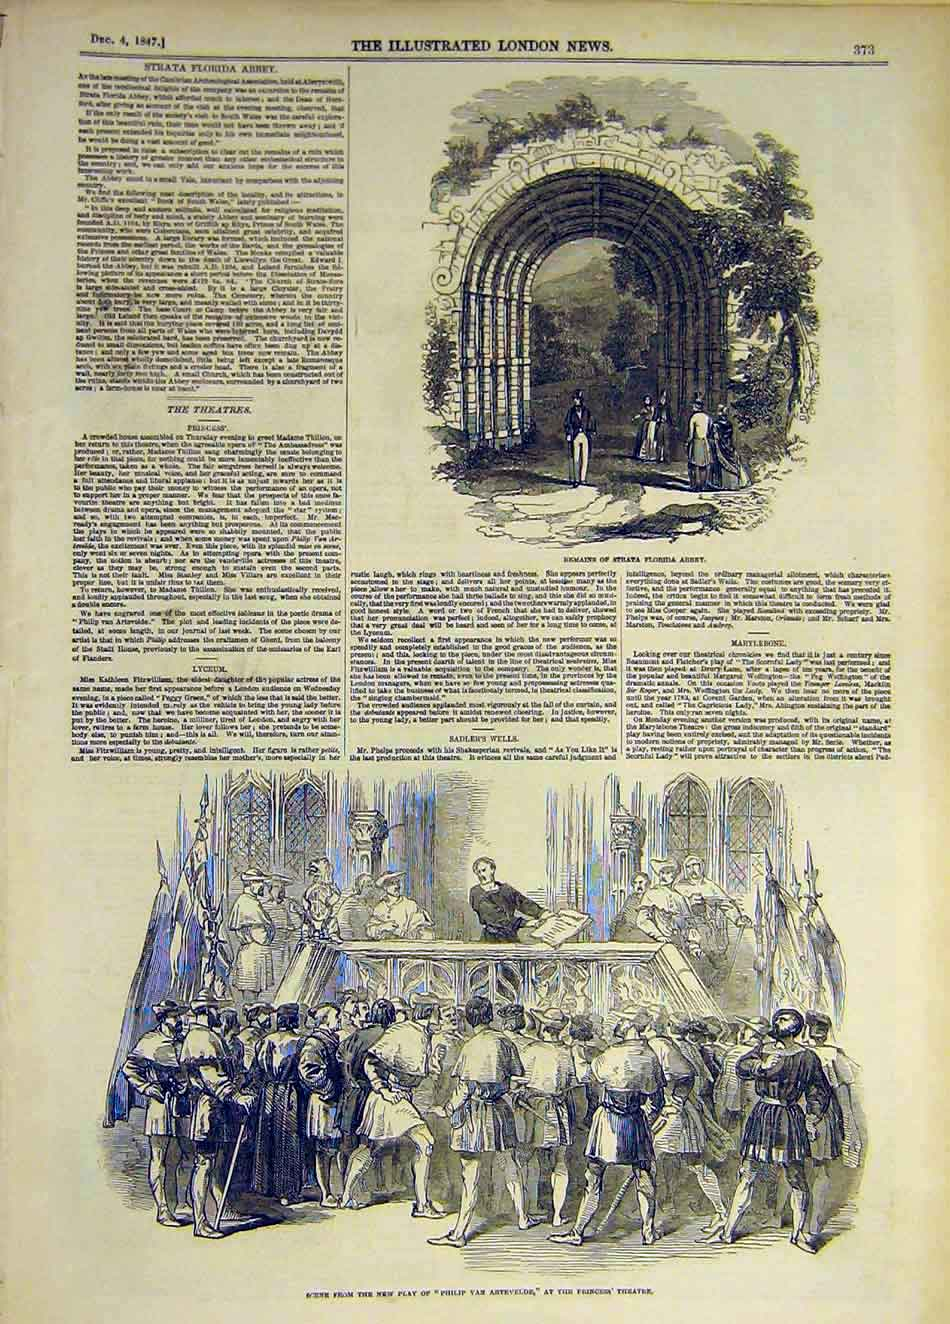 Print 1847 Strata Florida Abbey Scene Play Artevelde Theatre 717931 Old Original